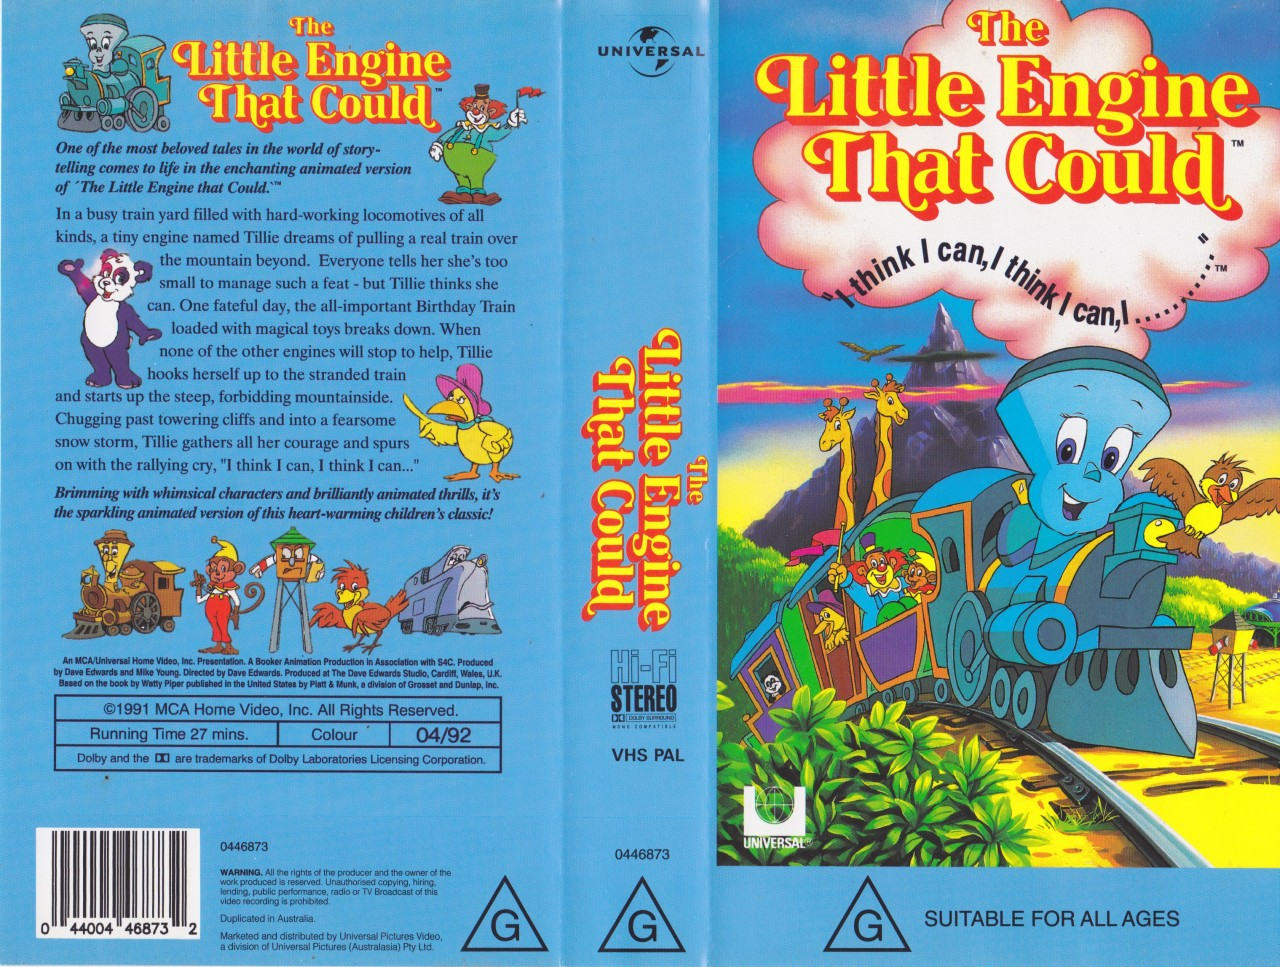 The Little Engine That Could Rare Fiind Vhs Pal Video